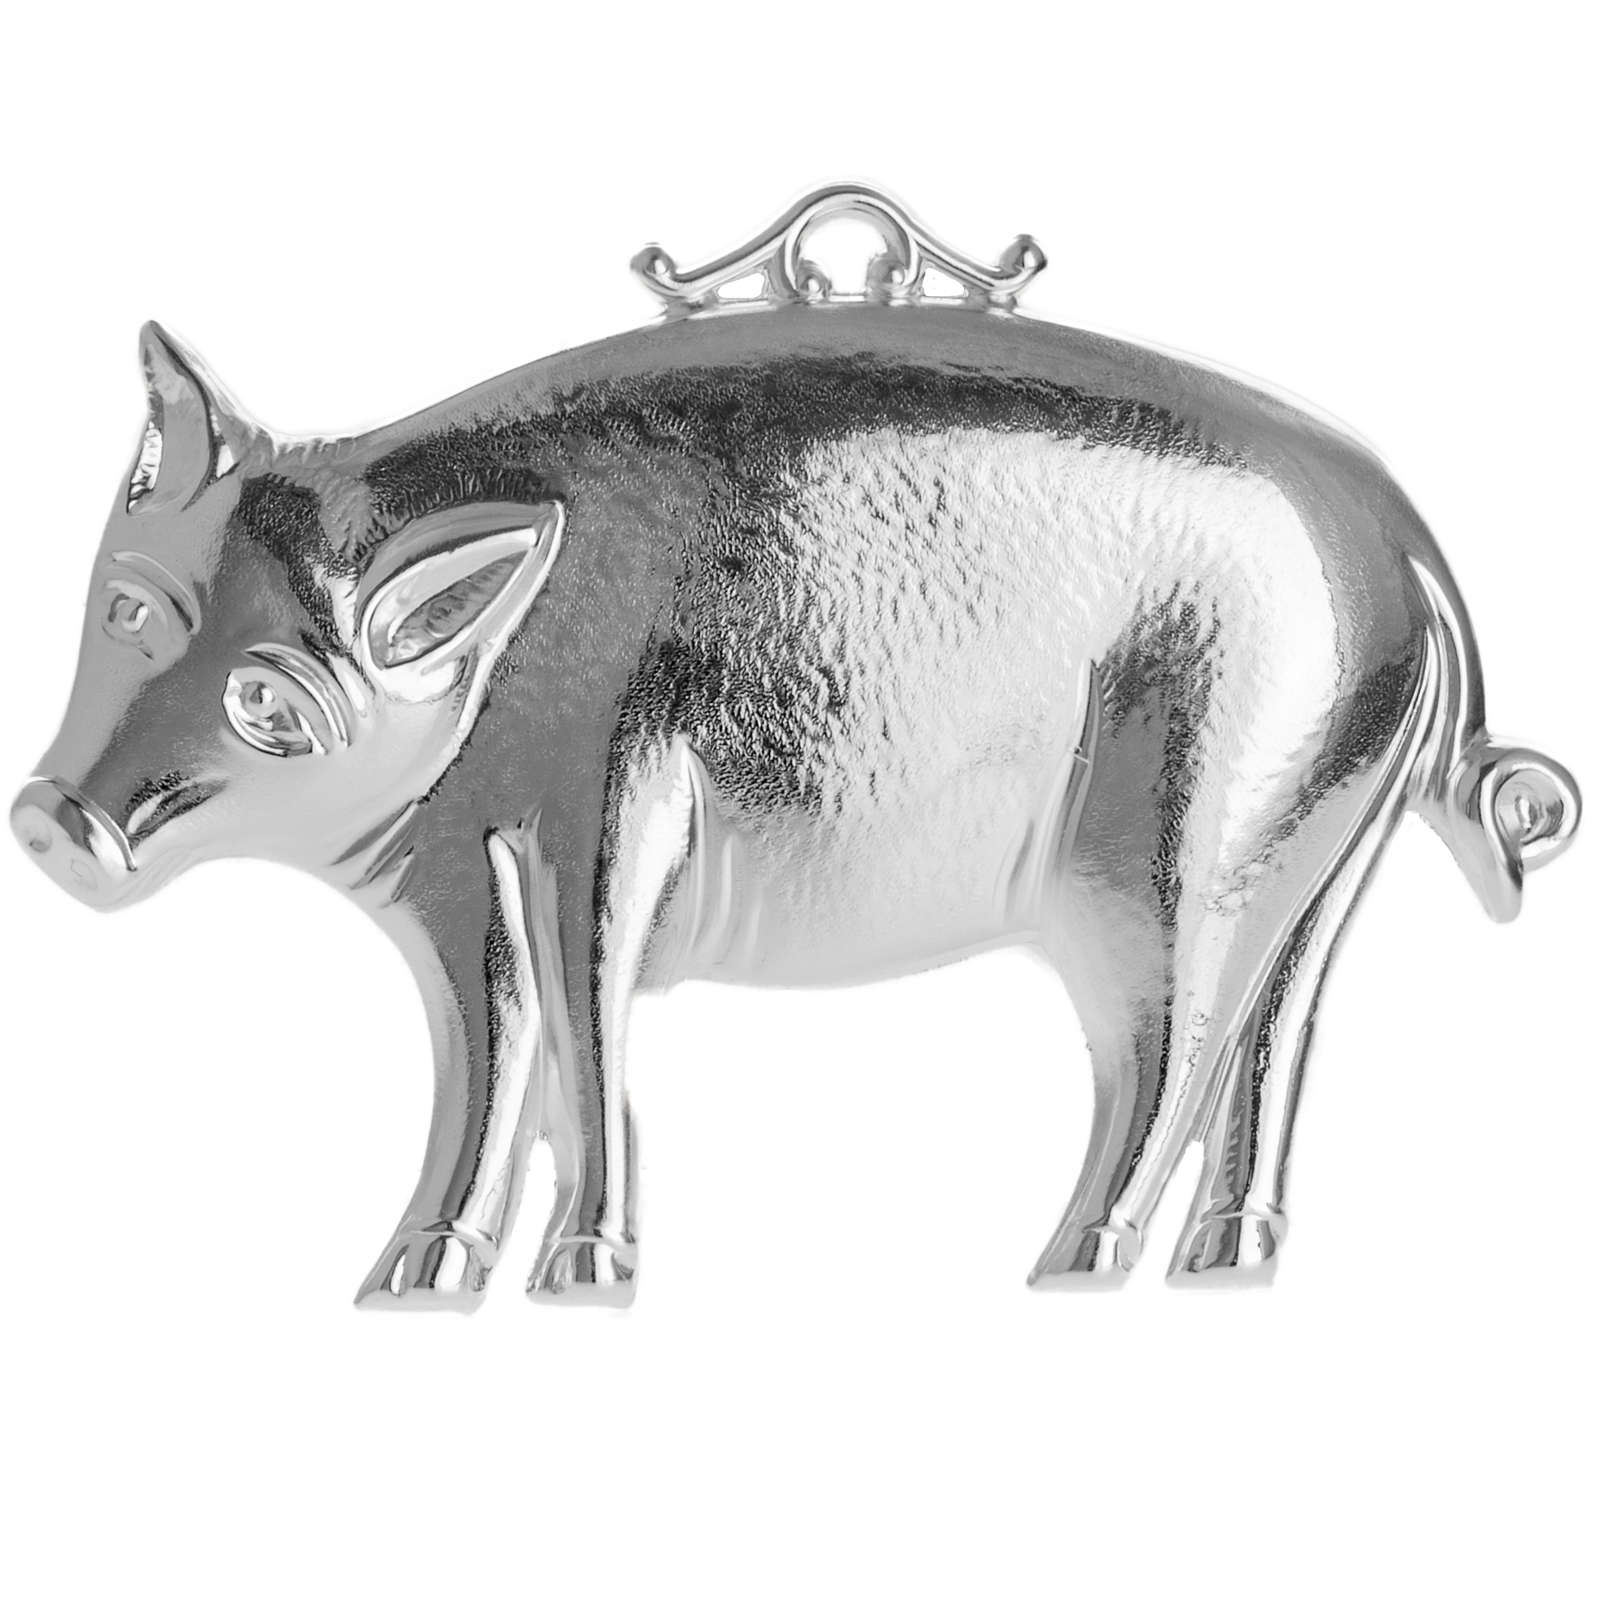 Ex-voto, pig in sterling silver or metal, 10 x 6cm 3